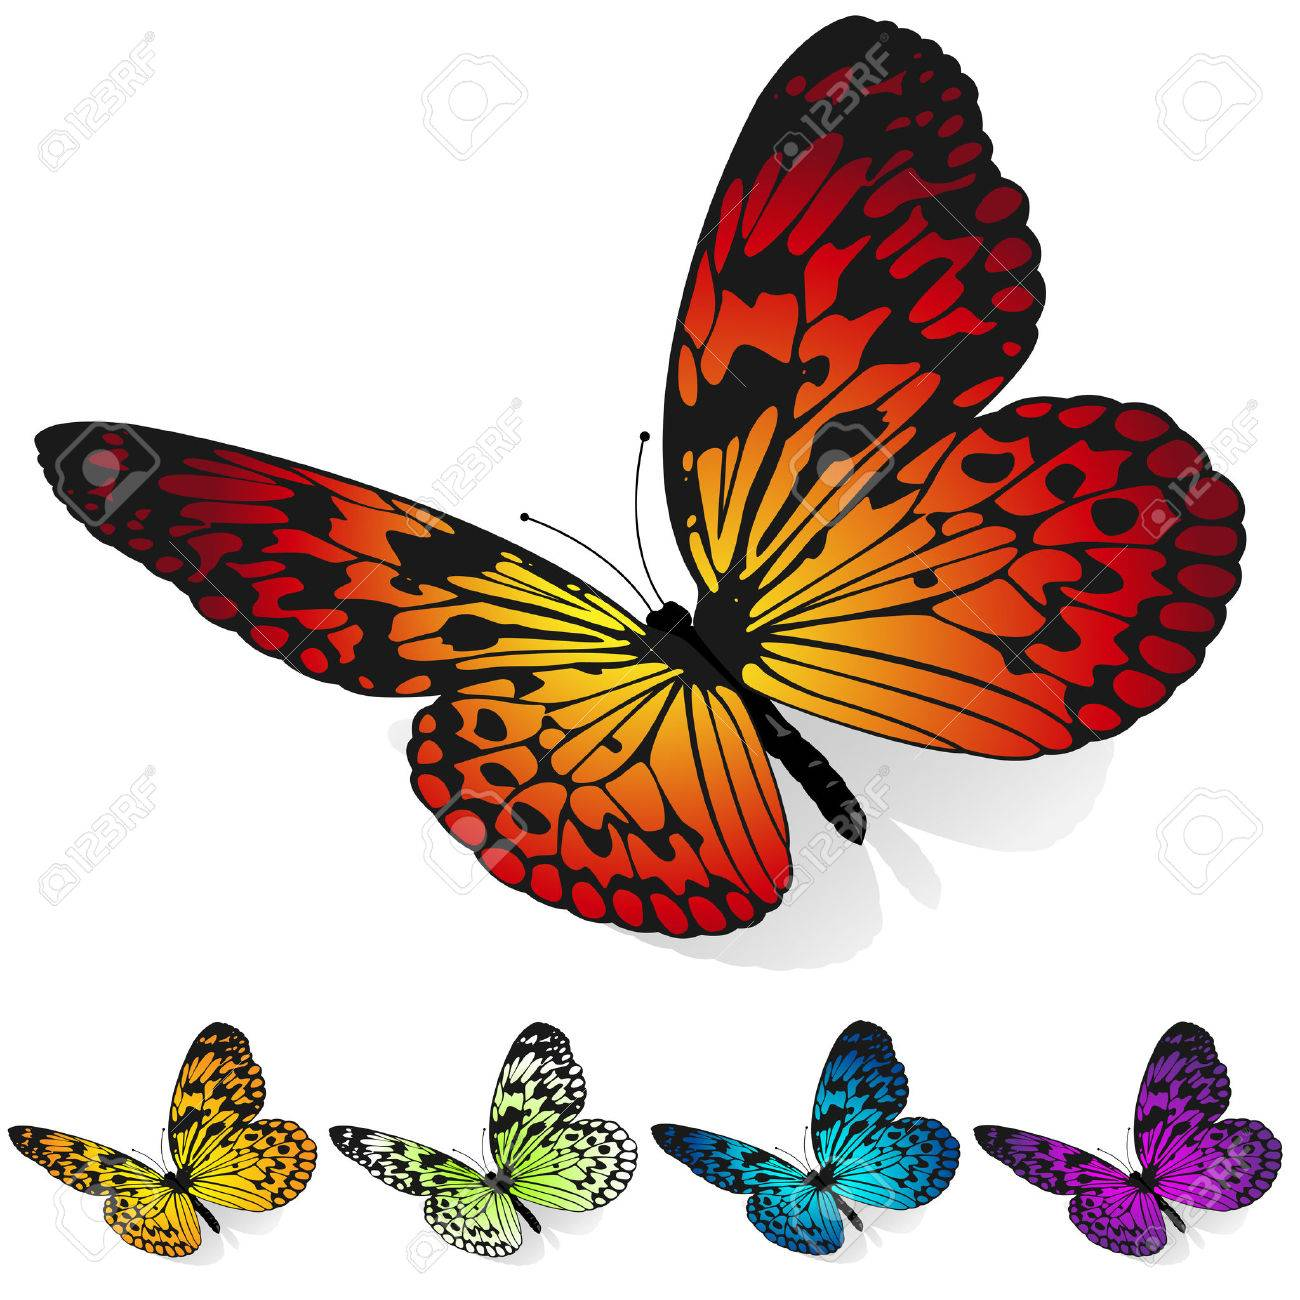 vector set of colorful butterflies sitting on the surface isolated